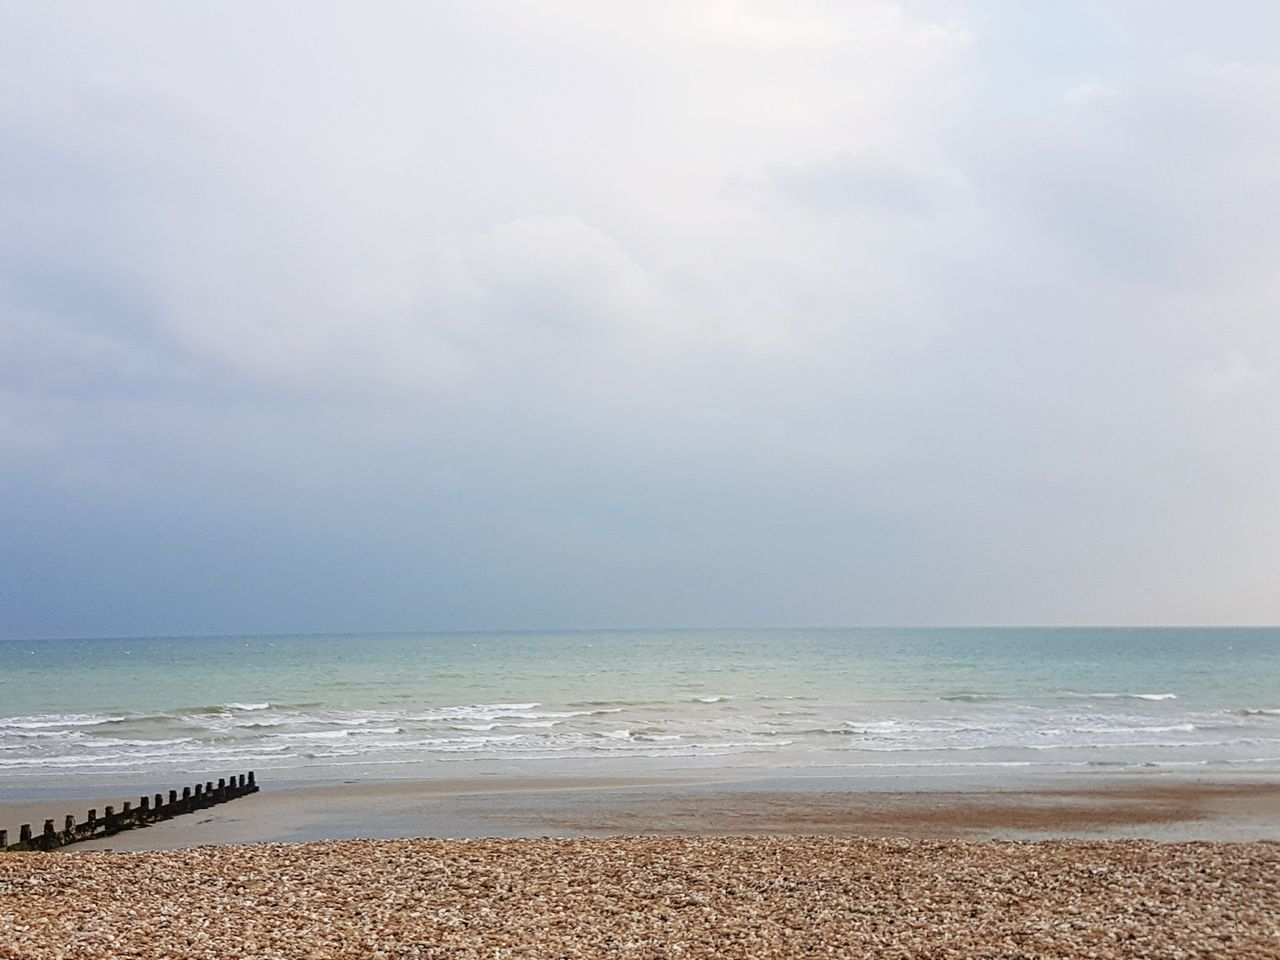 Horizon Over Water Sea Beach Water Shore Sand Tranquil Scene Scenics Tranquility Coastline Seascape Sky Beauty In Nature Idyllic Nature Calm Vacations Wave Cloud Ocean Bognor Sea Front Storm Cloud Dramatic Sky Diminishing Perspective Cloudscape